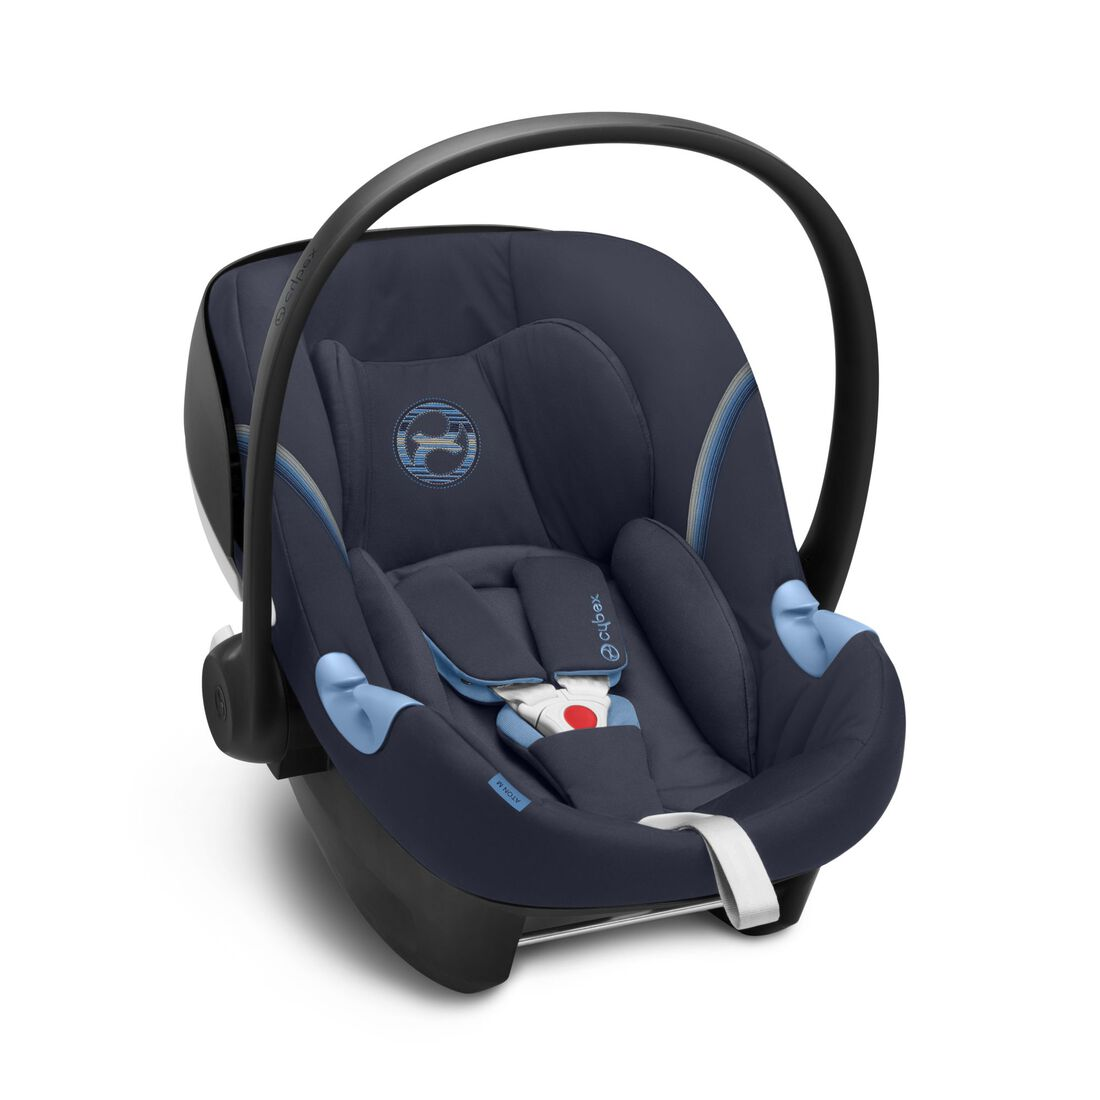 CYBEX Aton M i-Size - Navy Blue in Navy Blue large image number 2